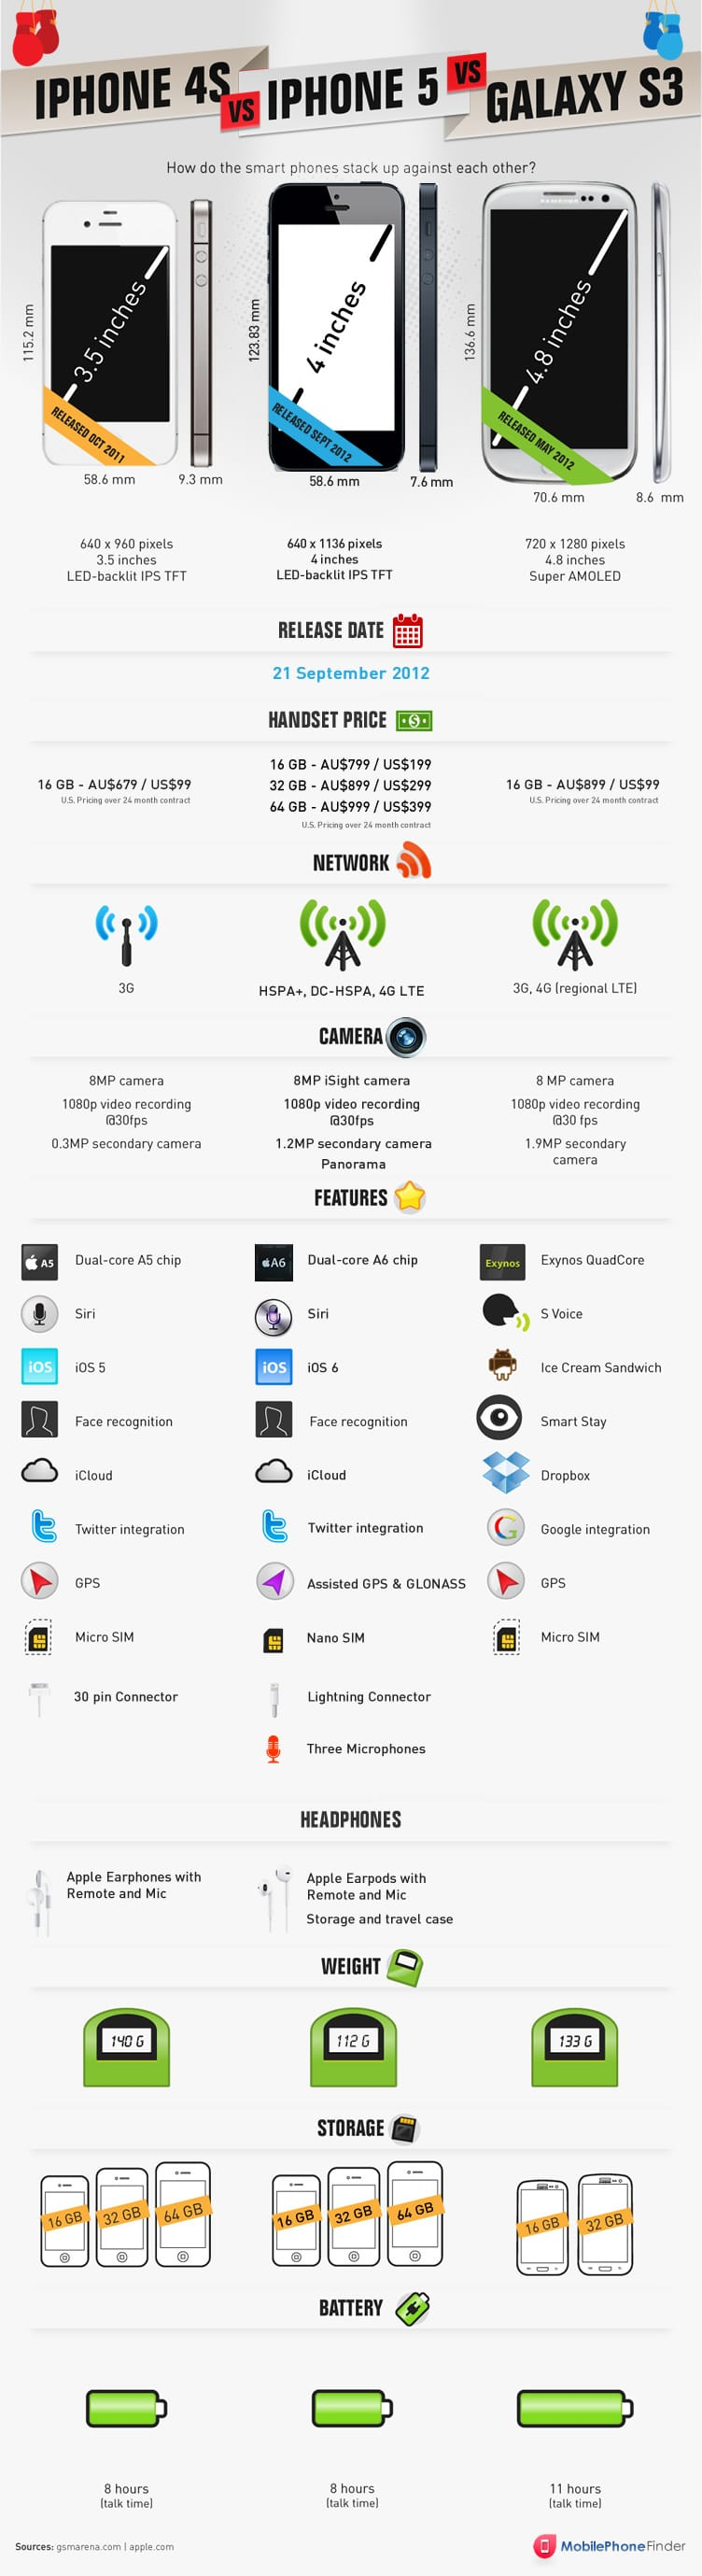 iPhone 5 Specs Compared To iPhone 4S & Galaxy S3 [Infographic]